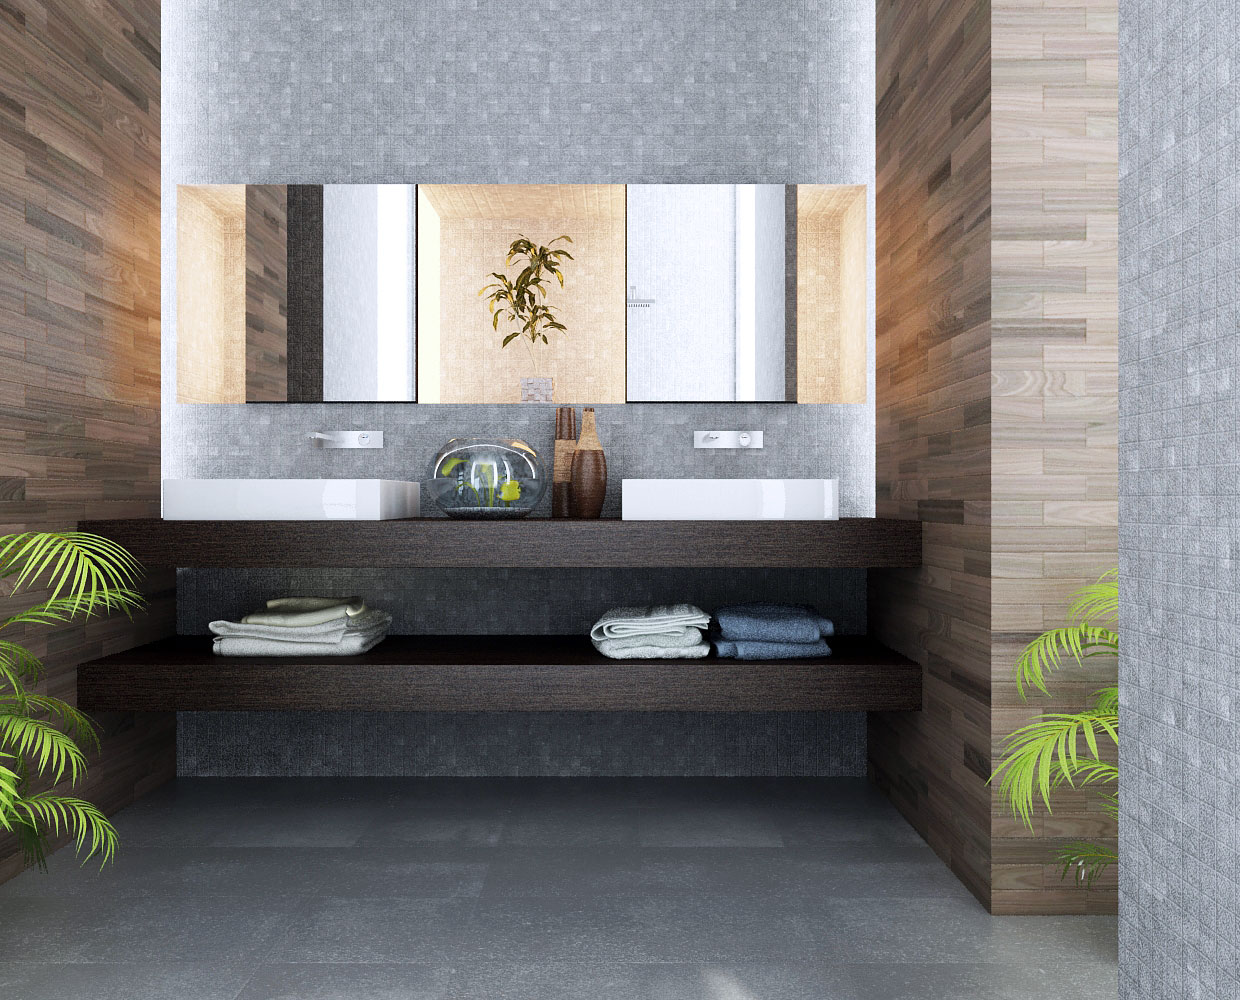 Magnificent Modern Bathroom Design Ideas 1240 x 1000 · 298 kB · jpeg